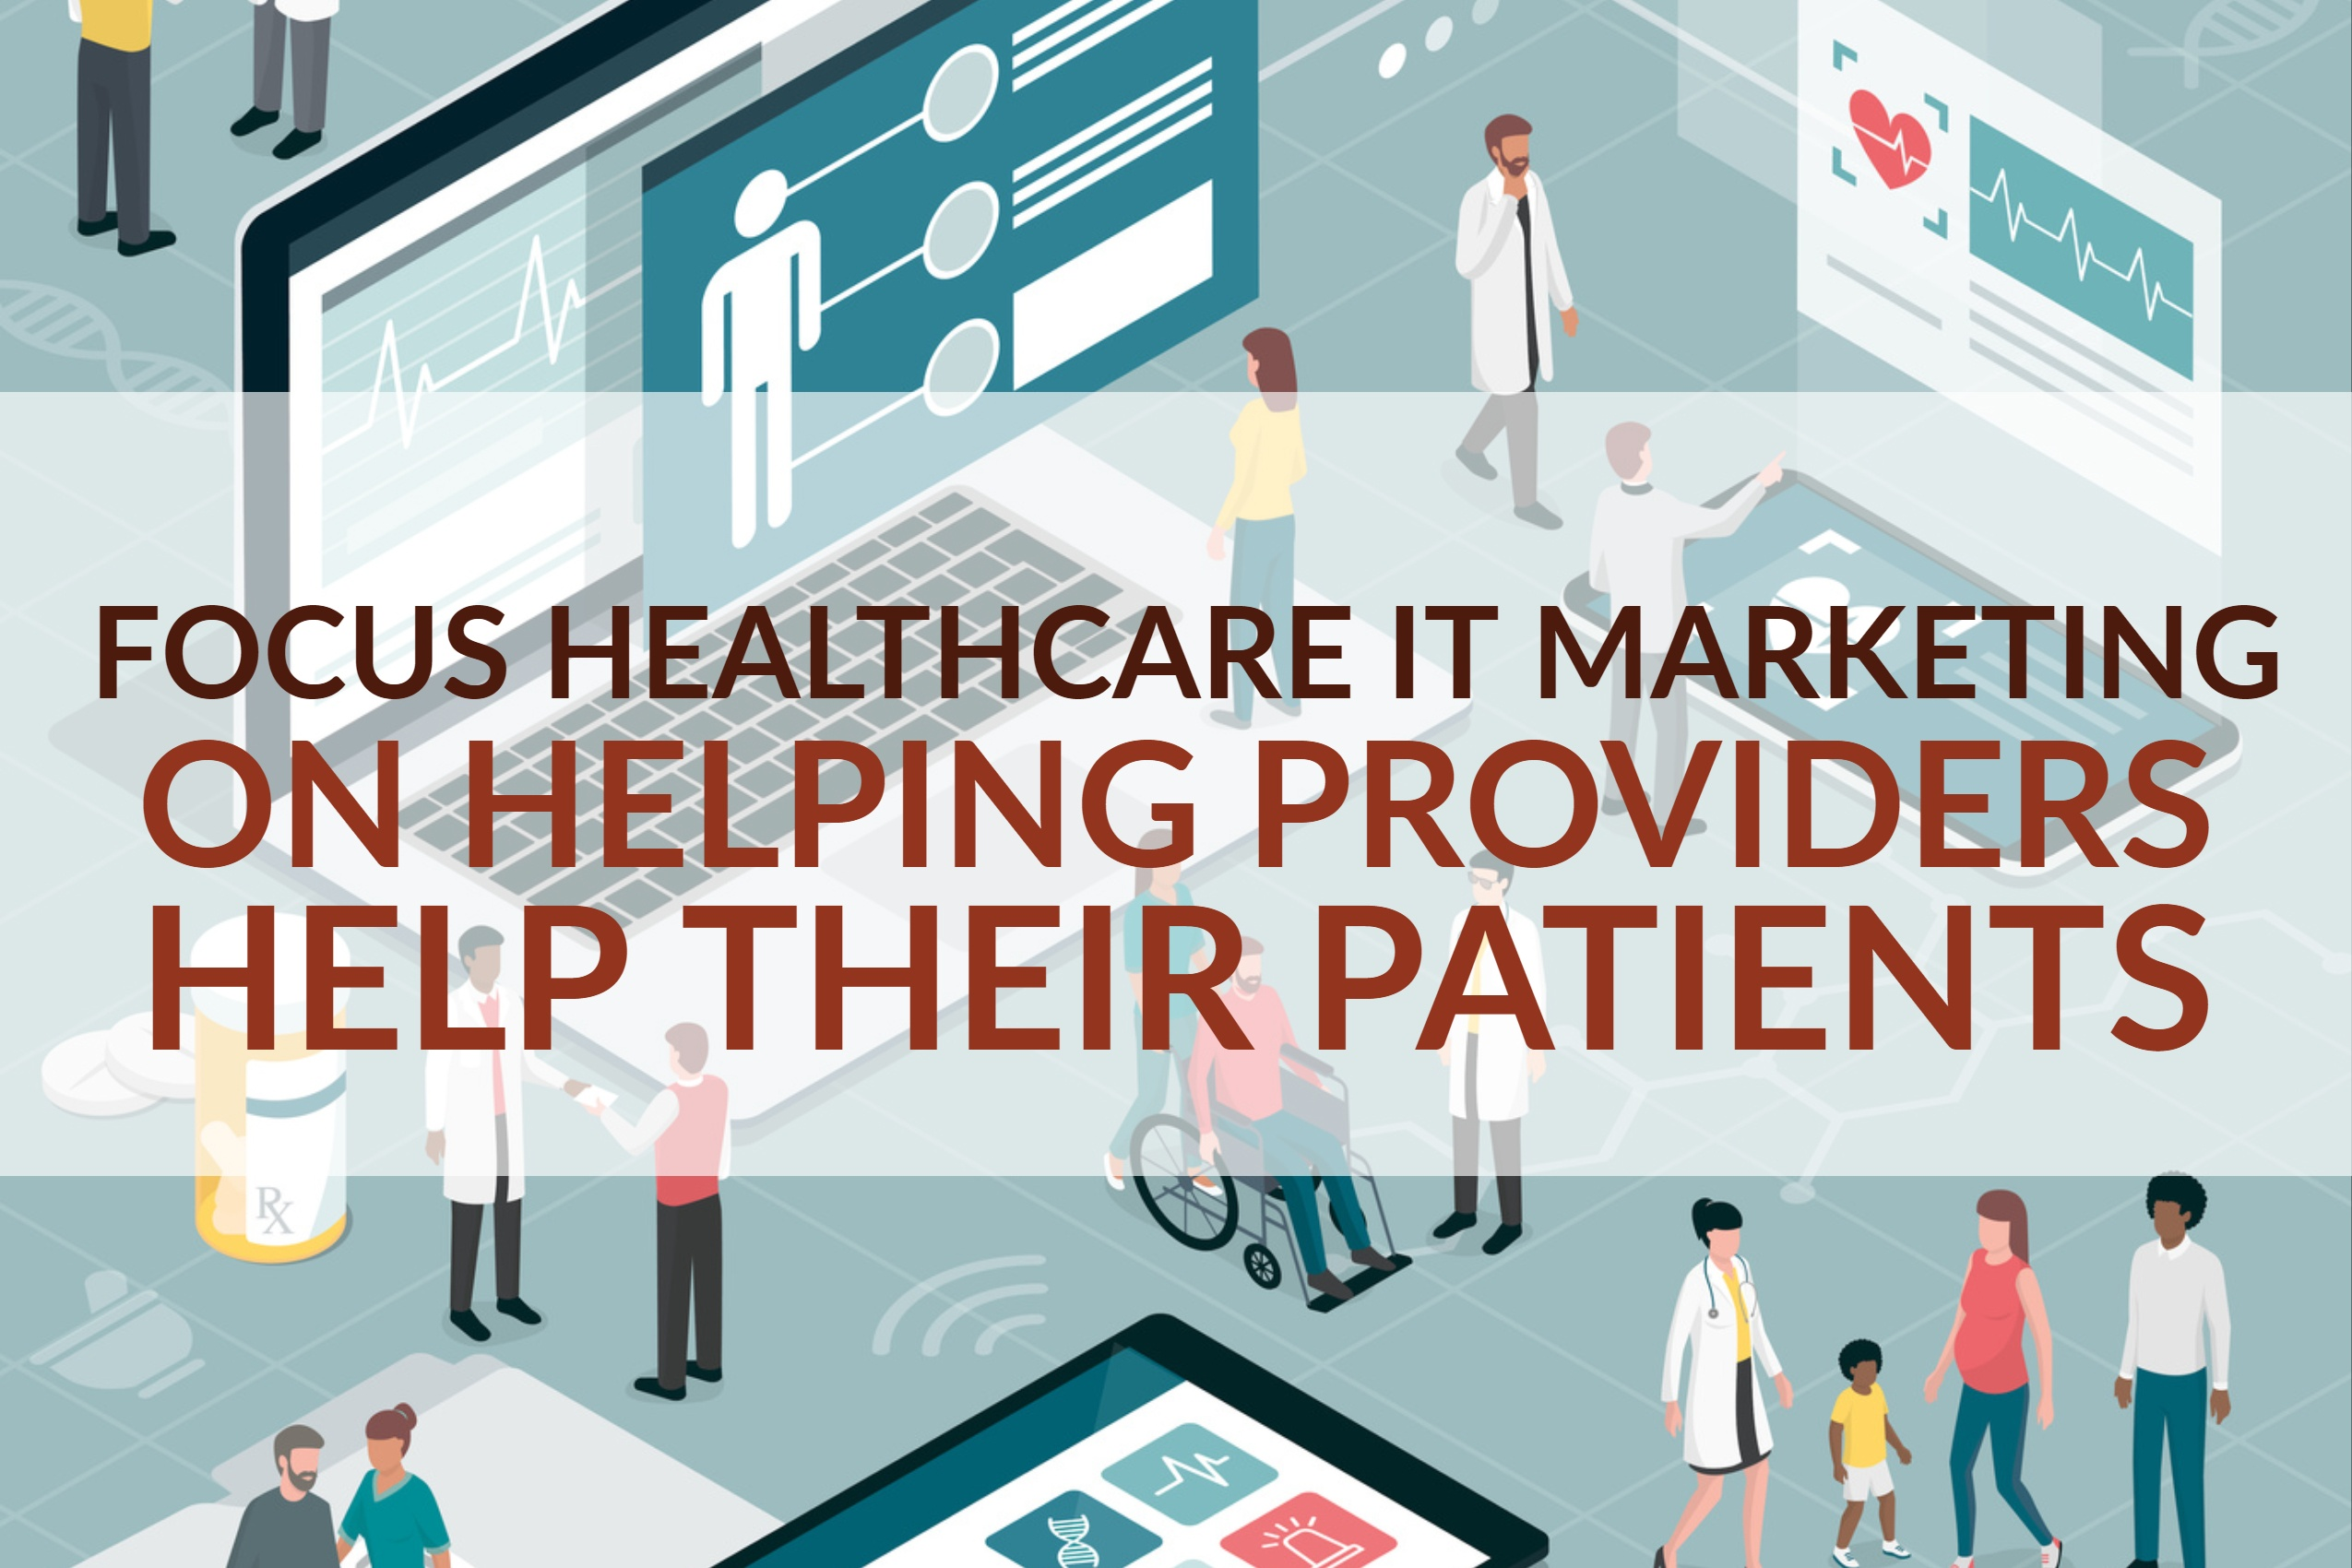 Focus Healthcare IT Marketing On Helping Providers Help Their Patients